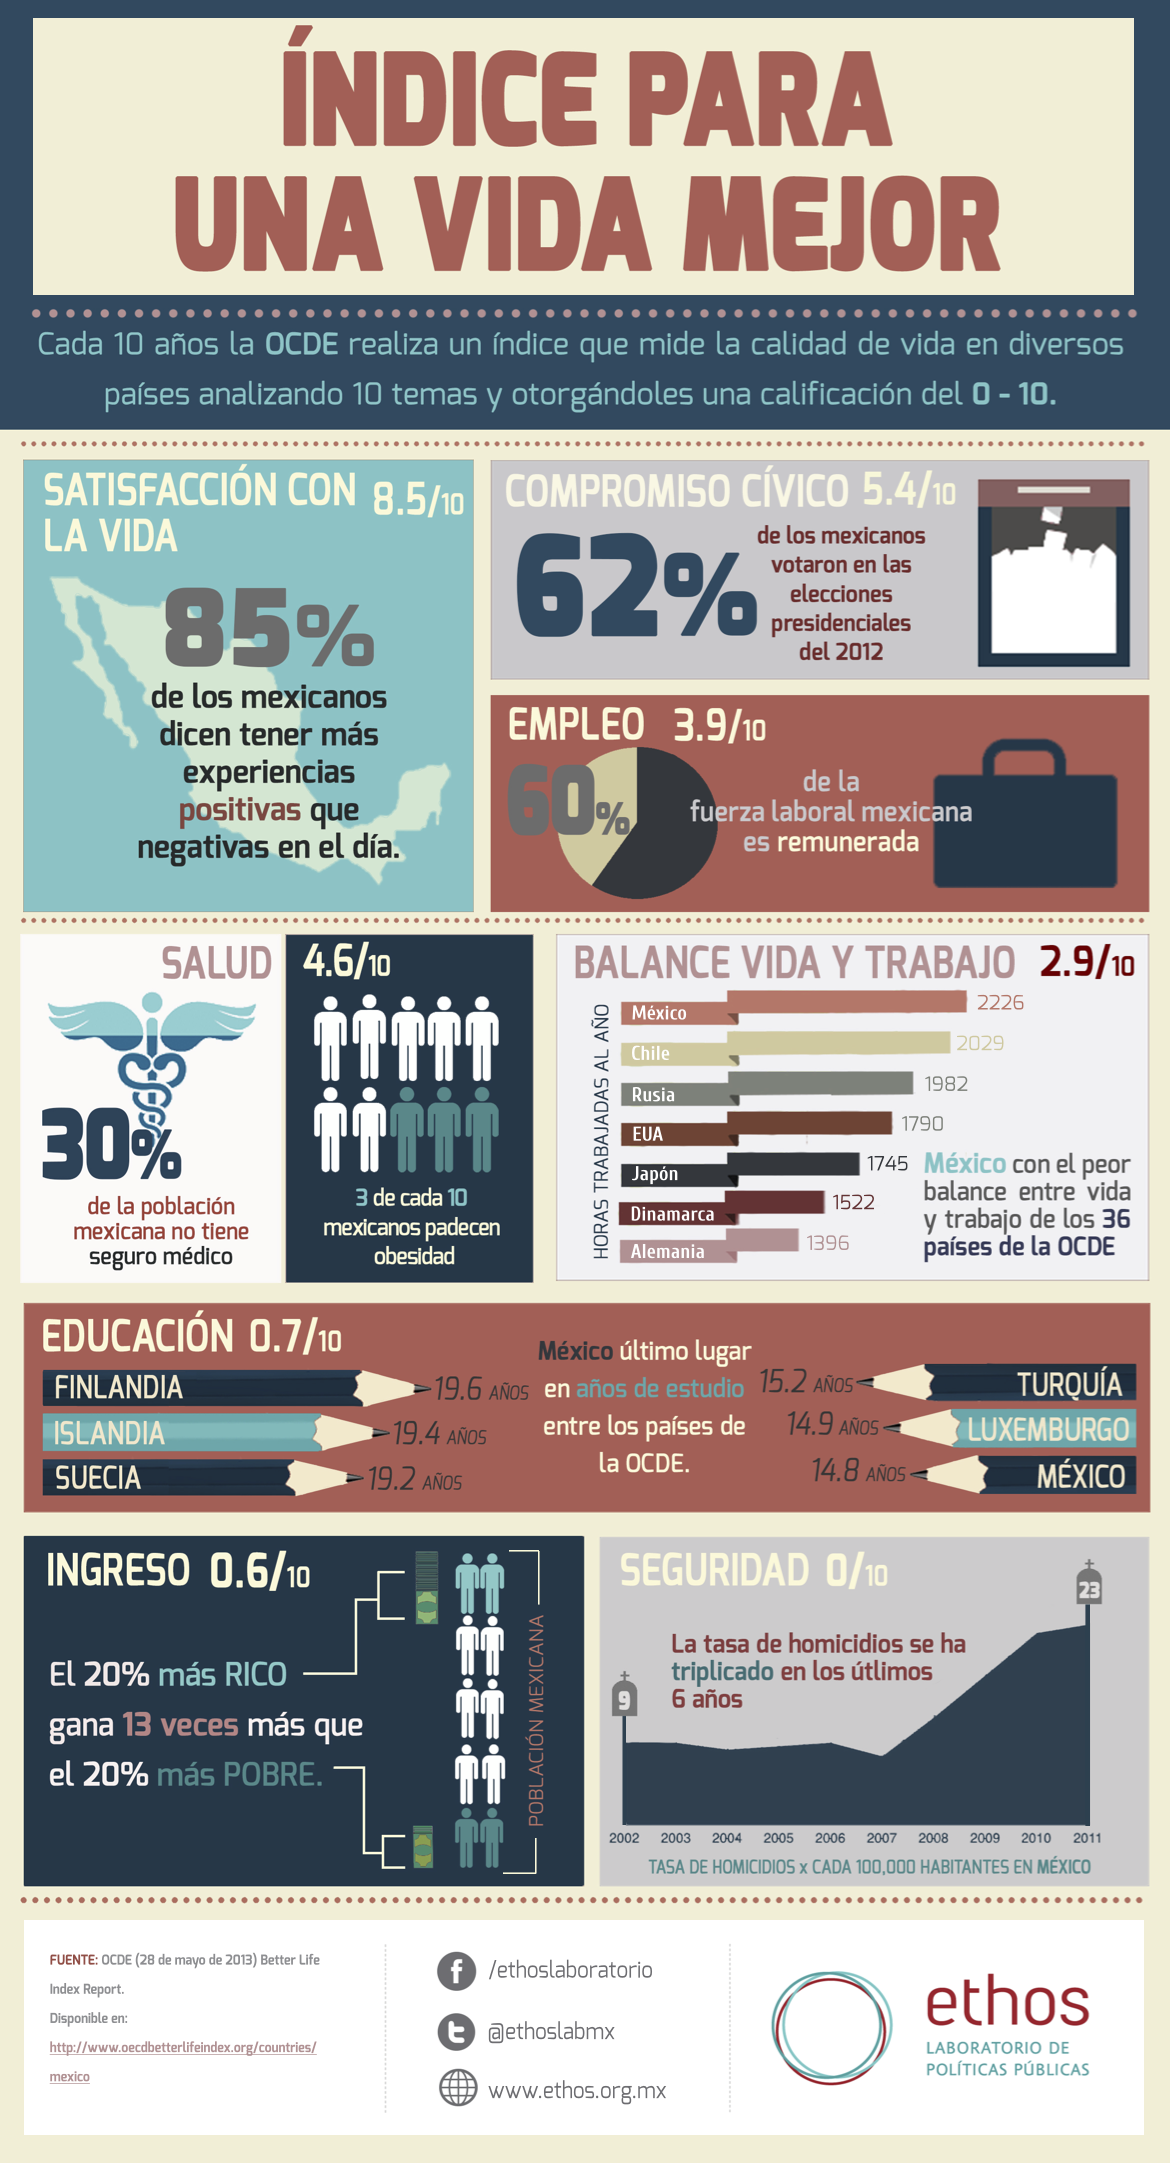 Better Life Index - Mexico